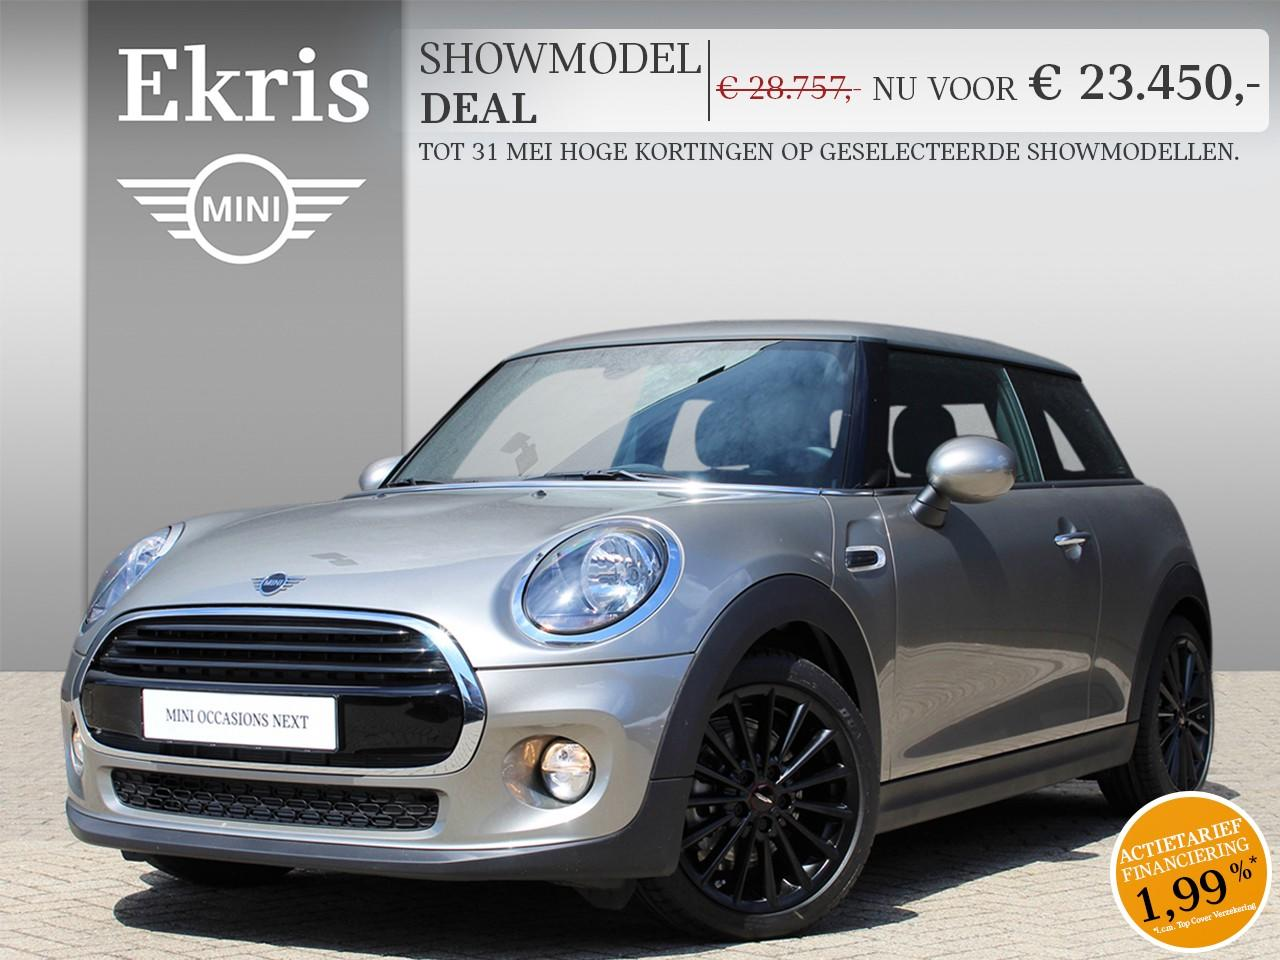 Mini 3-deurs Cooper boost edition - showmodel deal